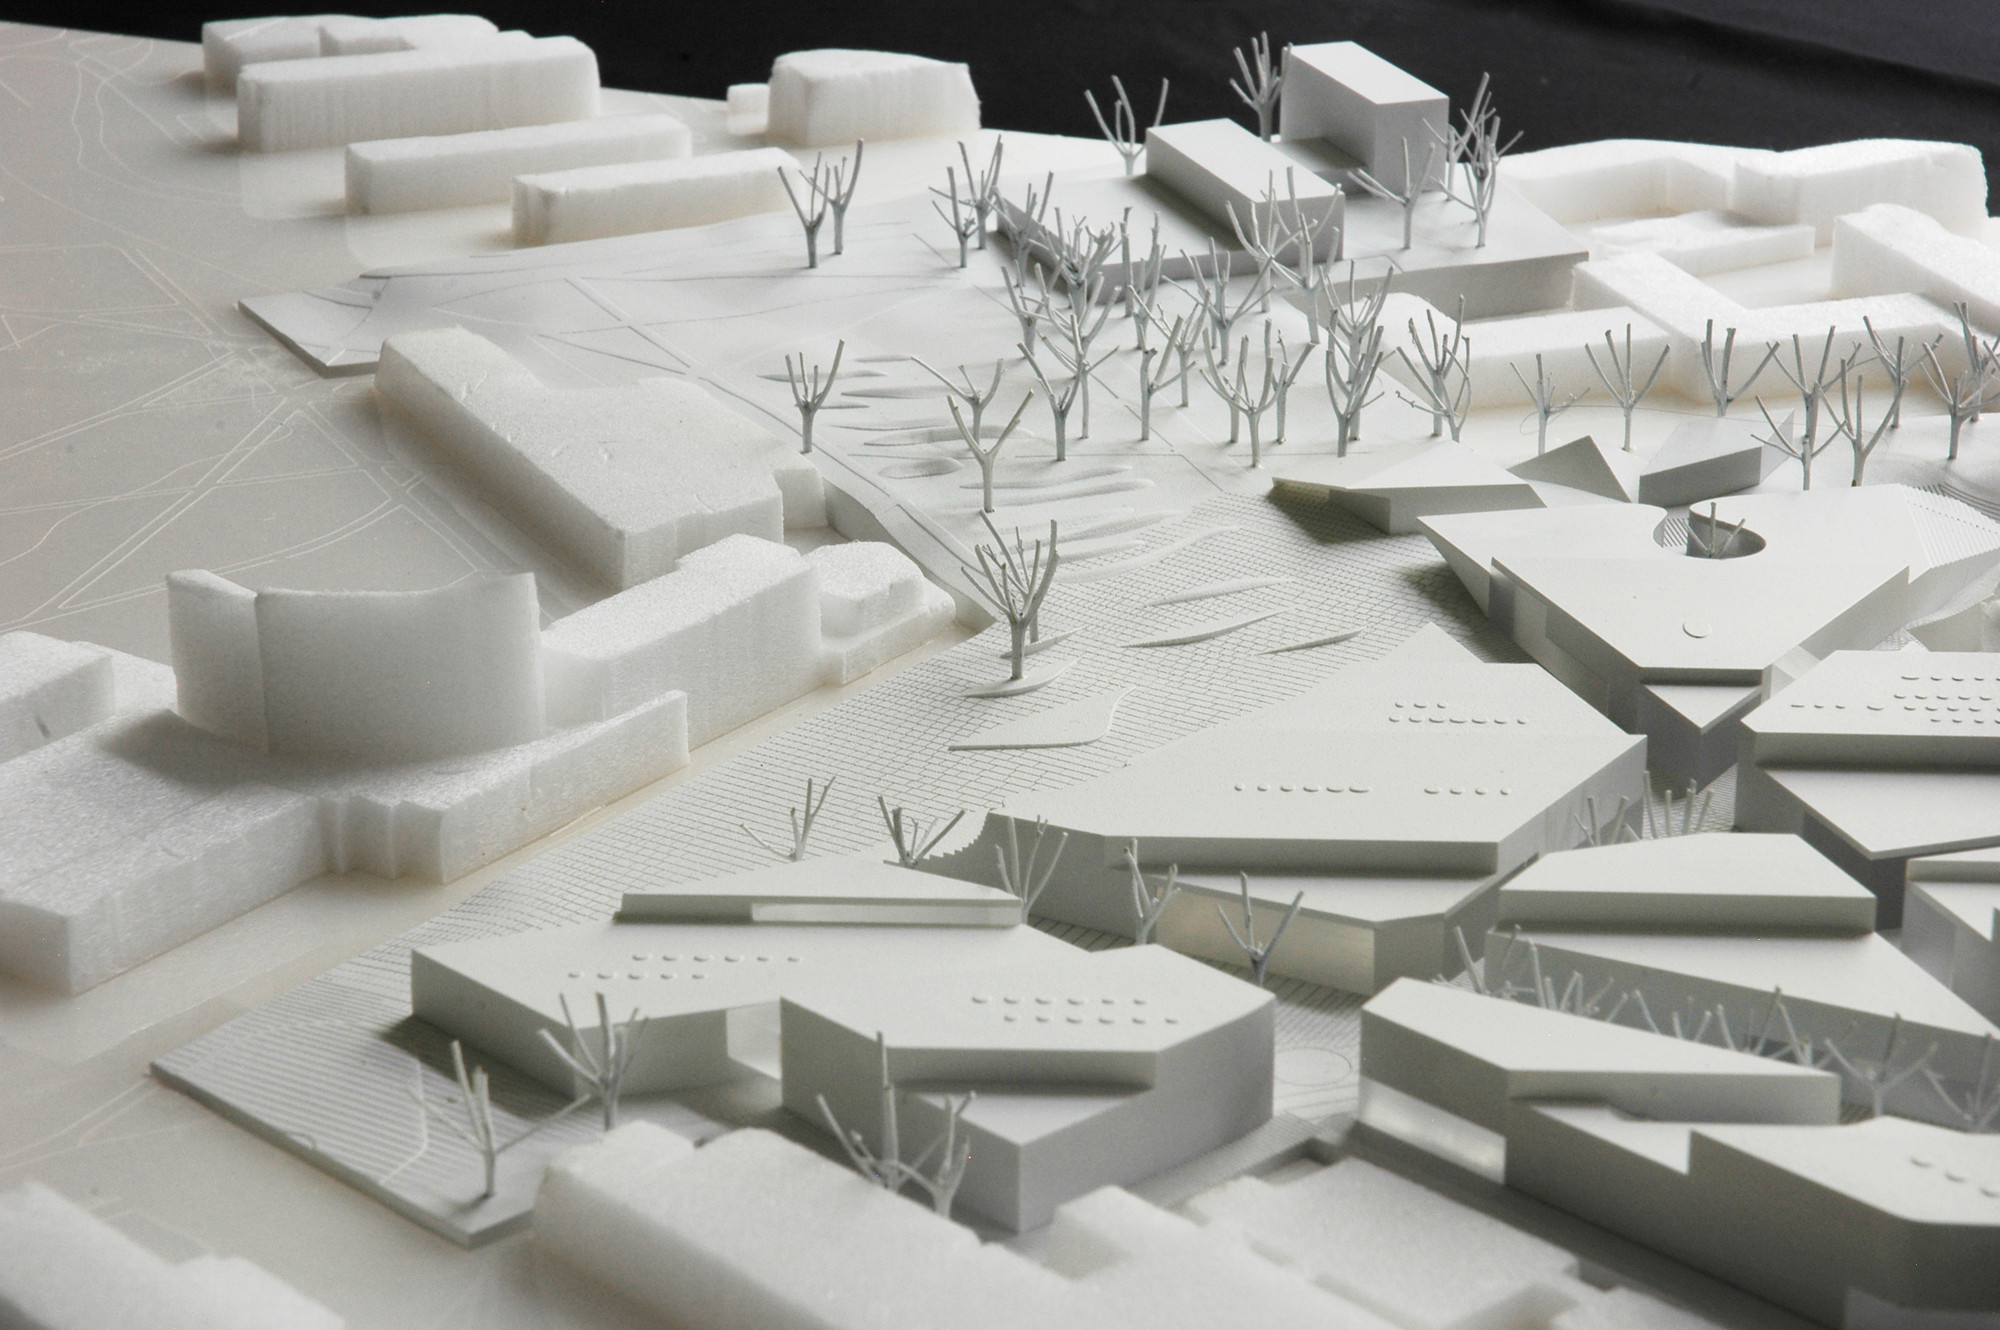 Model. Image © ALA Architects